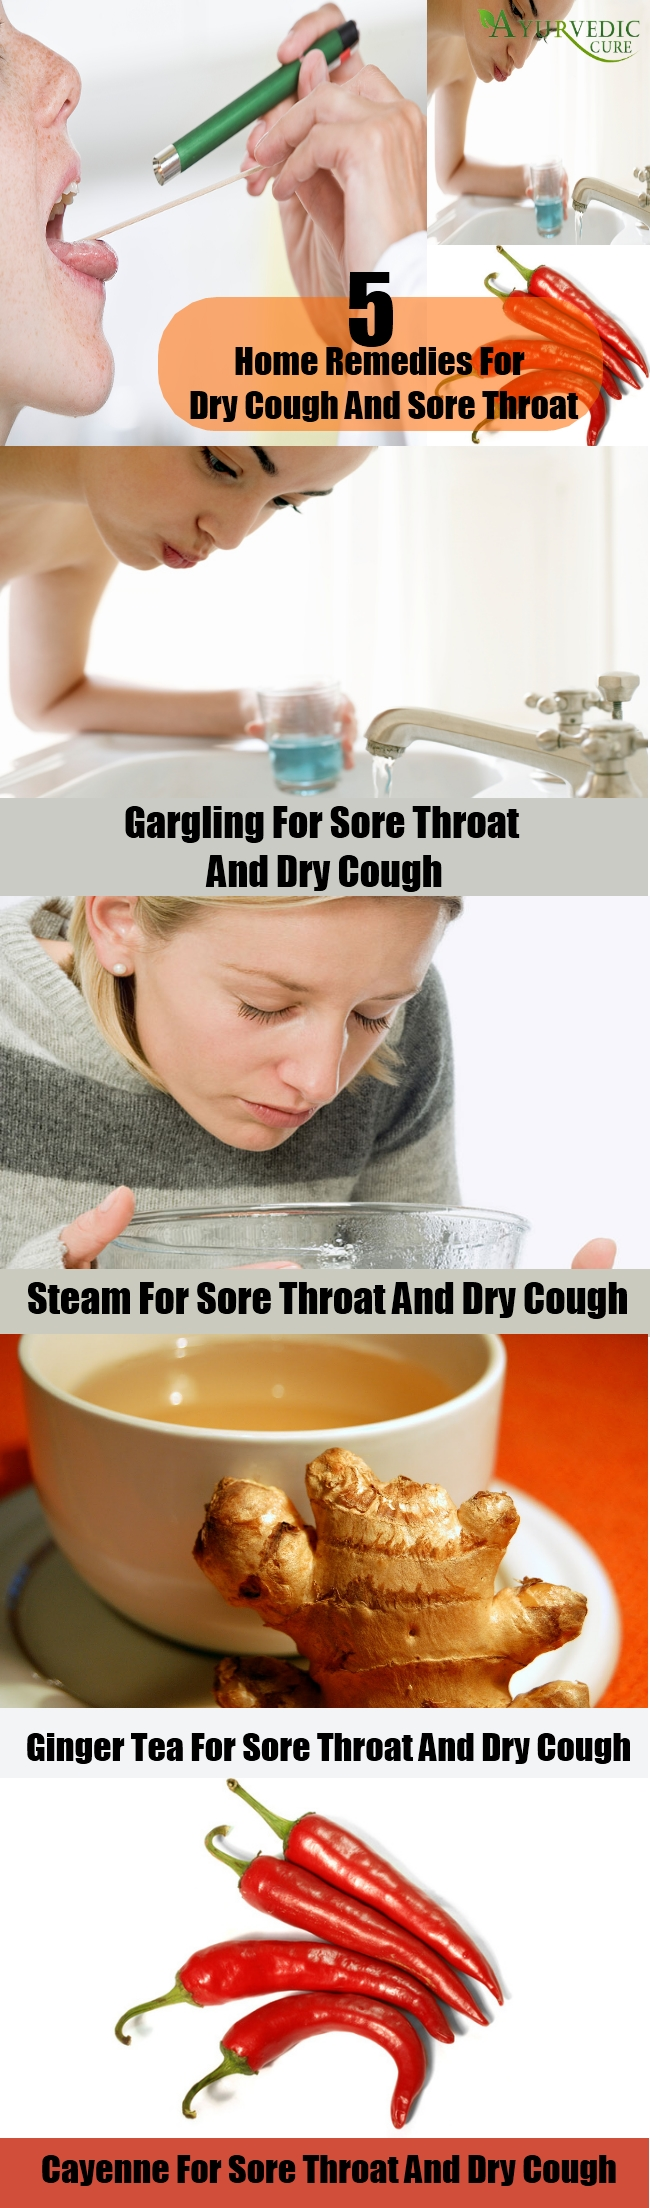 Dry Cough And Sore Throat Home Remedies Natural